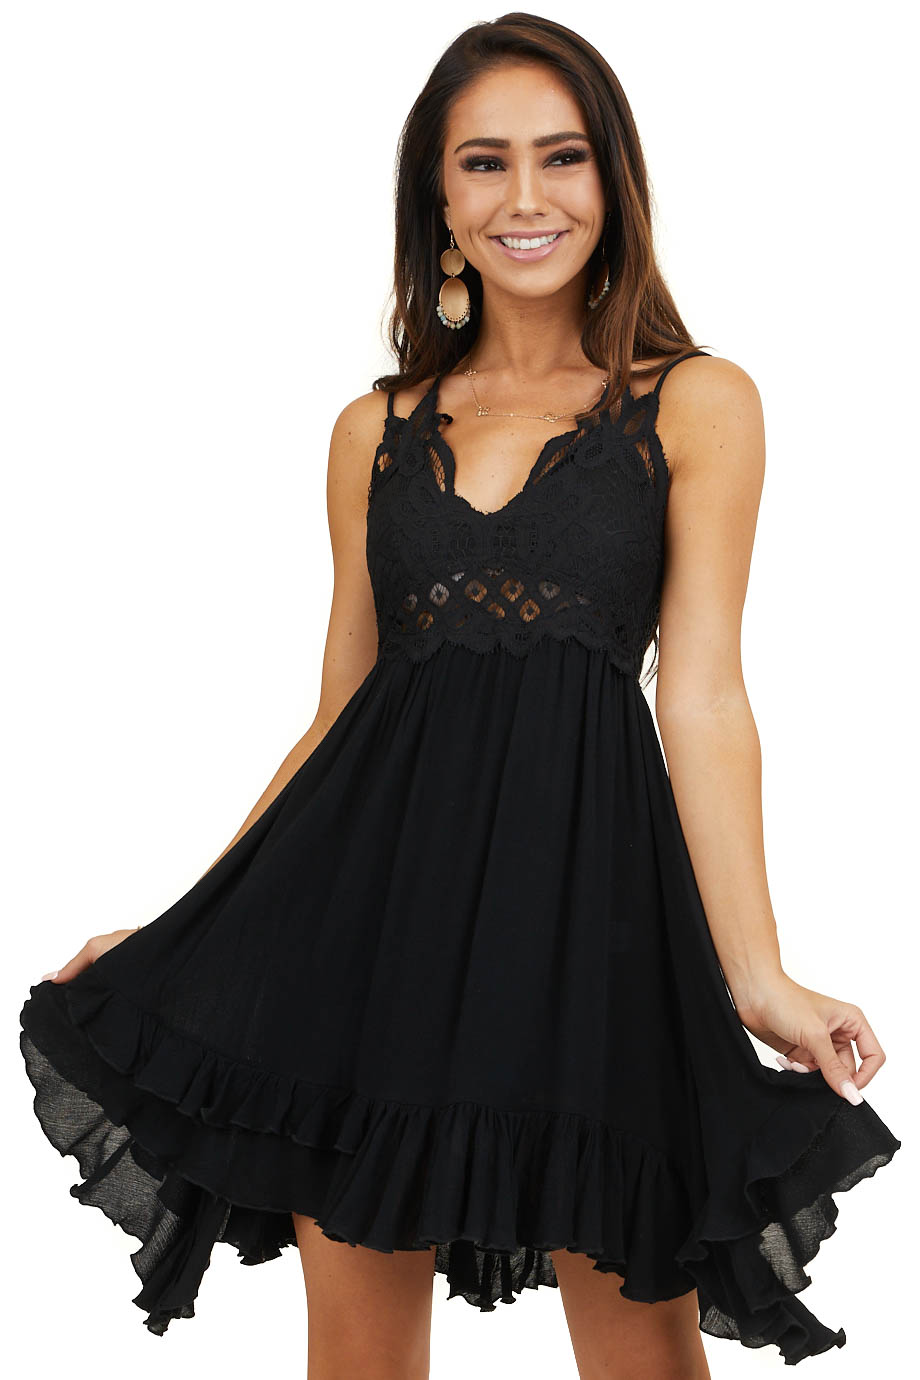 Black Double Spaghetti Strap Mini Dress with Lace Detail